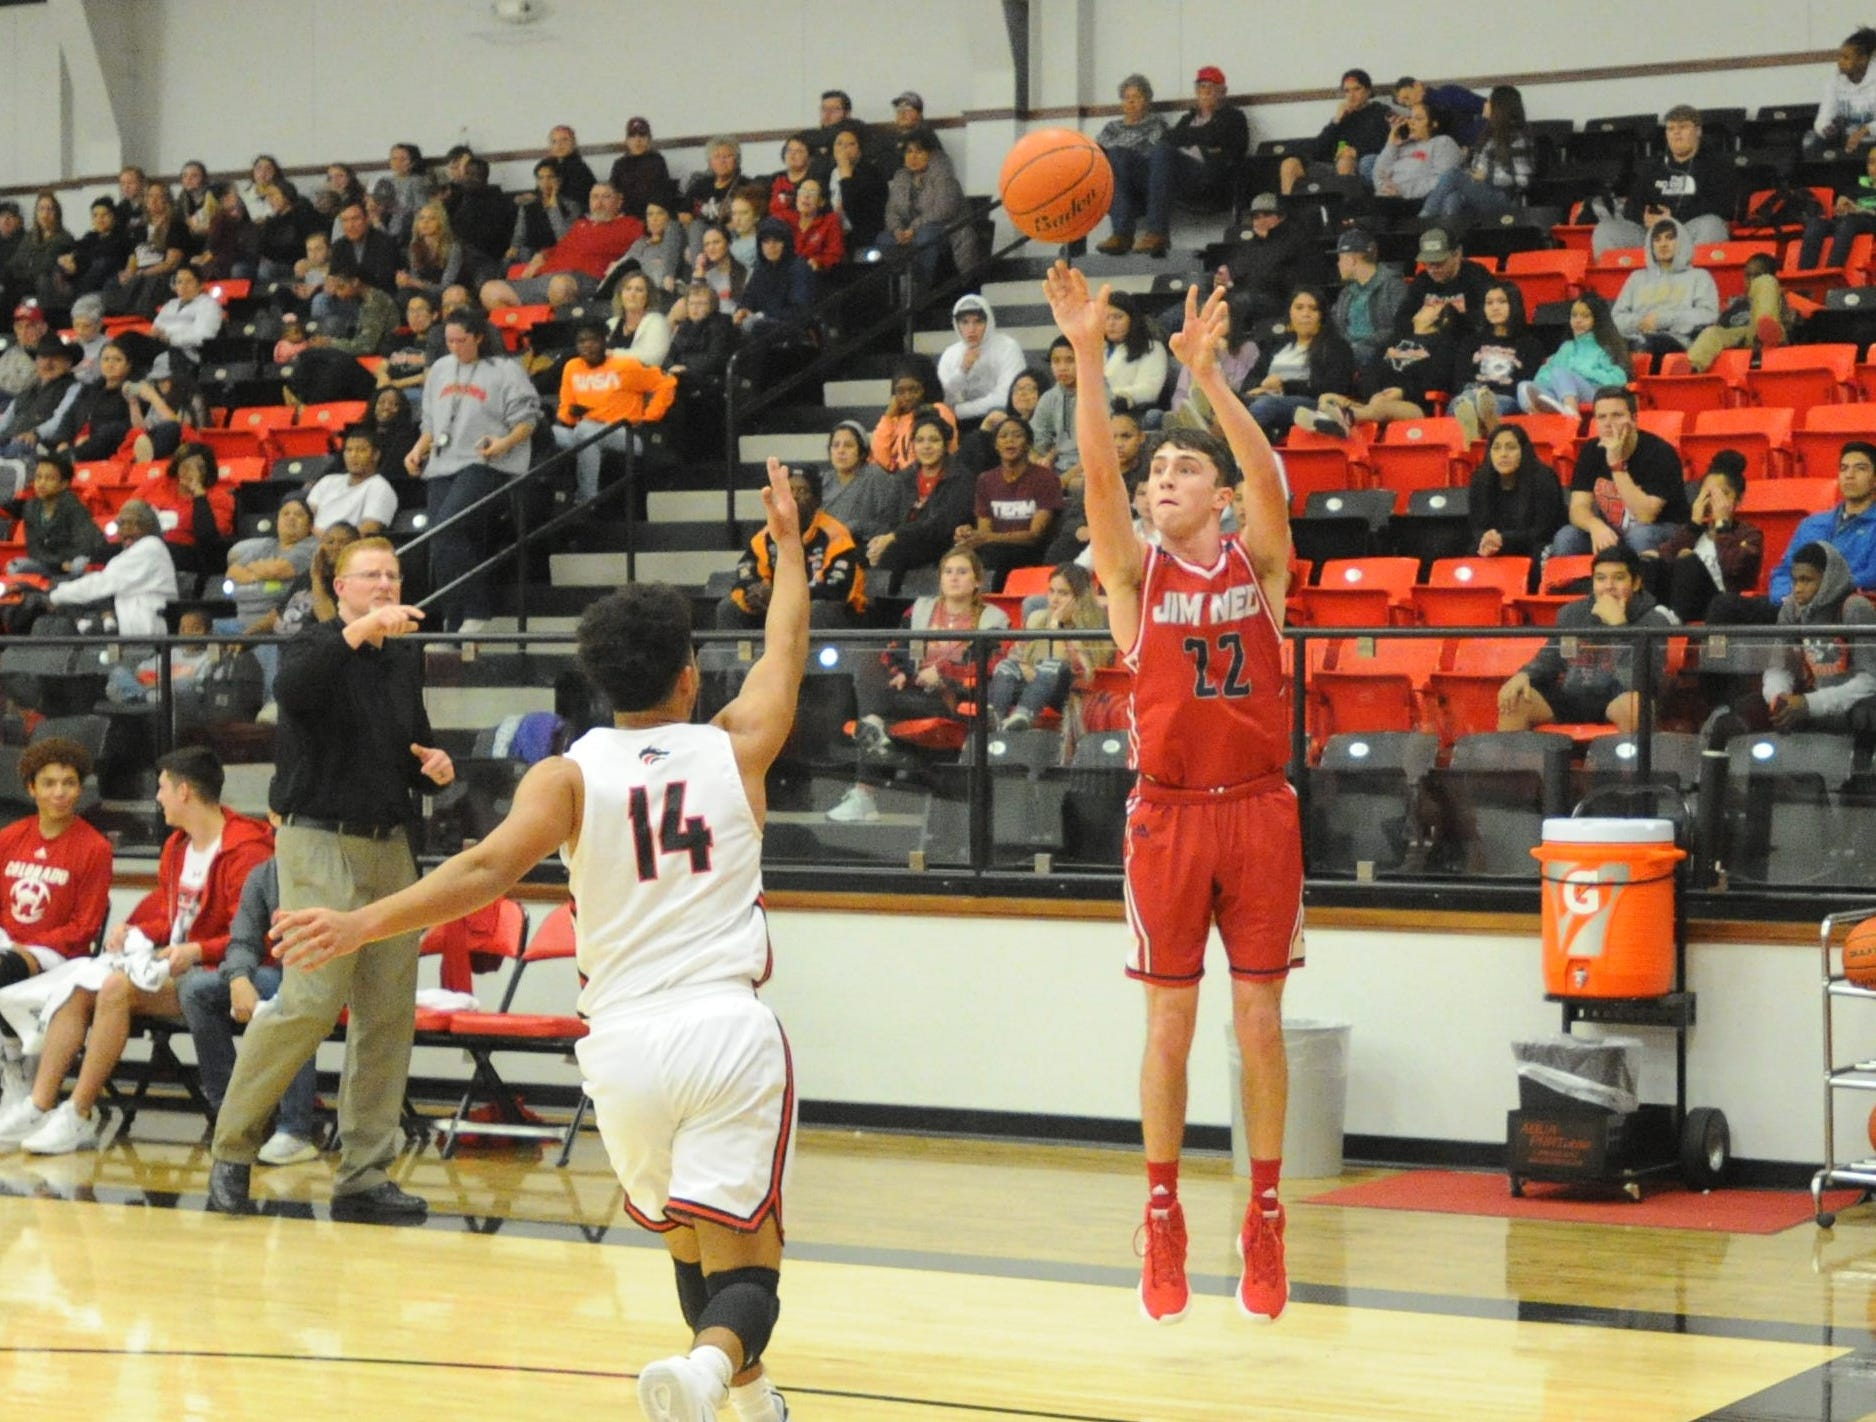 Jim Ned's Cade Ford takes a 3-pointer as Colorado City's Bubba Williams closes on defense. The Indians topped the Wolves 46-41 at Colorado High School on Jan. 15, 2019.